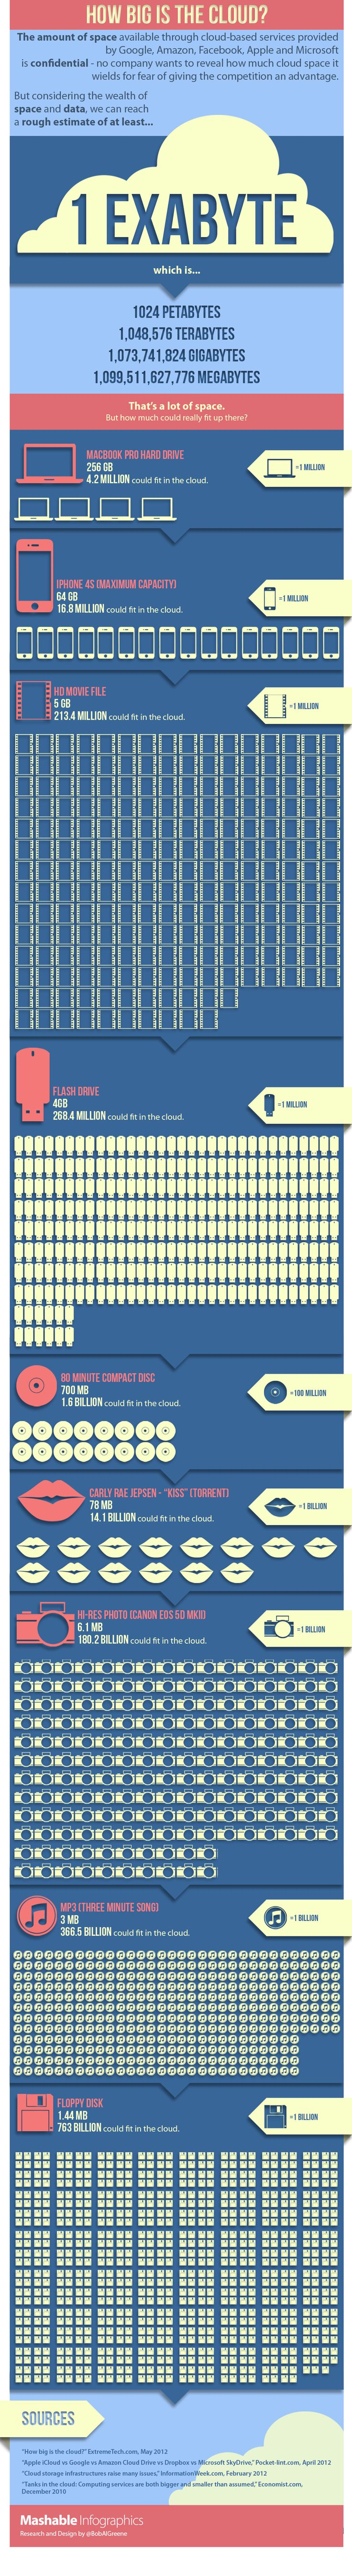 How big is the cloud? - By Mashable.